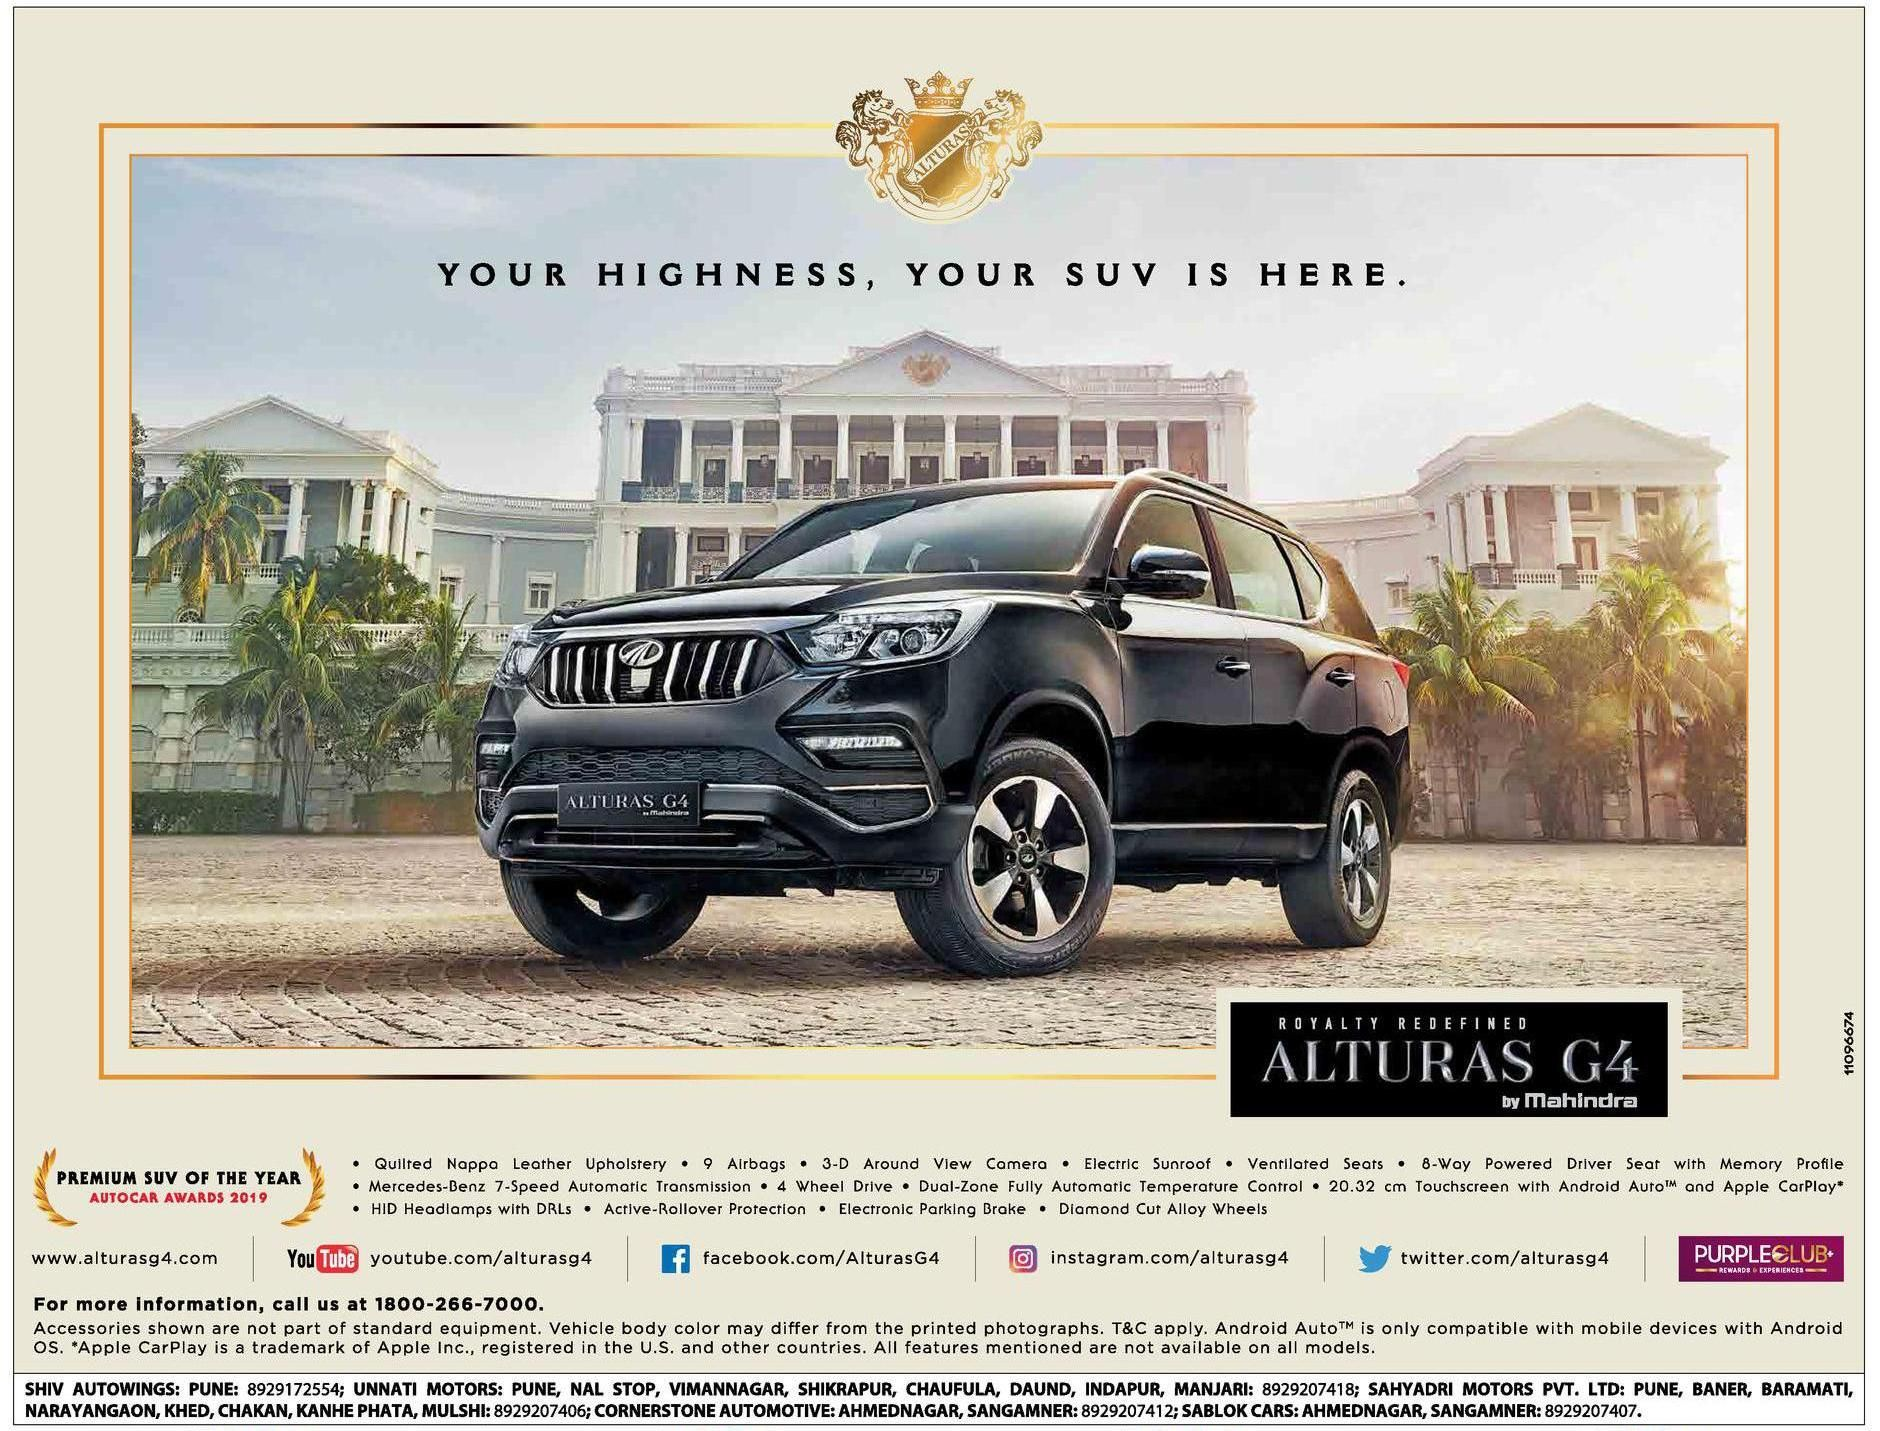 Alturas G4 By Mahindra Your Highness Your Suv Is Here Ad Sakal